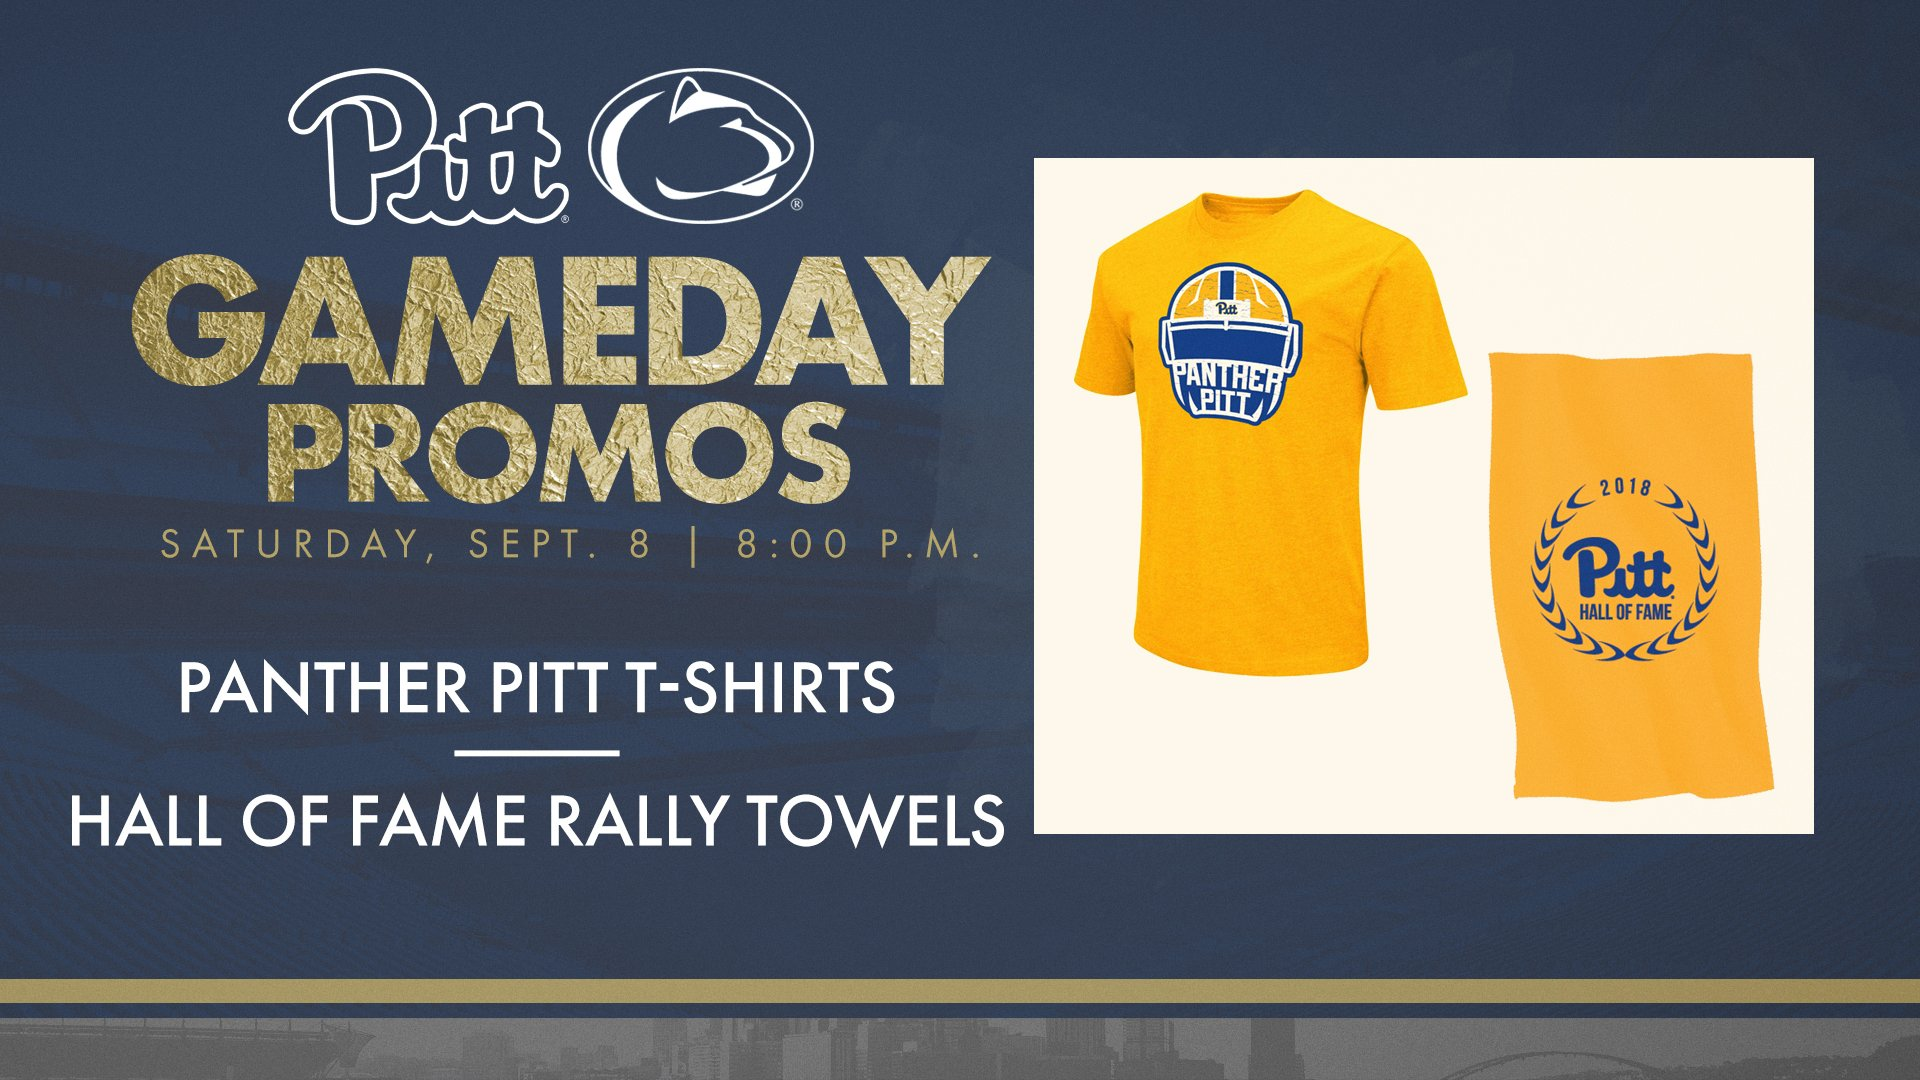 Pitt Athletics On Twitter Freebies For Tomorrow ThePantherPitt T Shirts PittTweet Students Hall Of Fame Rally Towels H2P LockTheGates